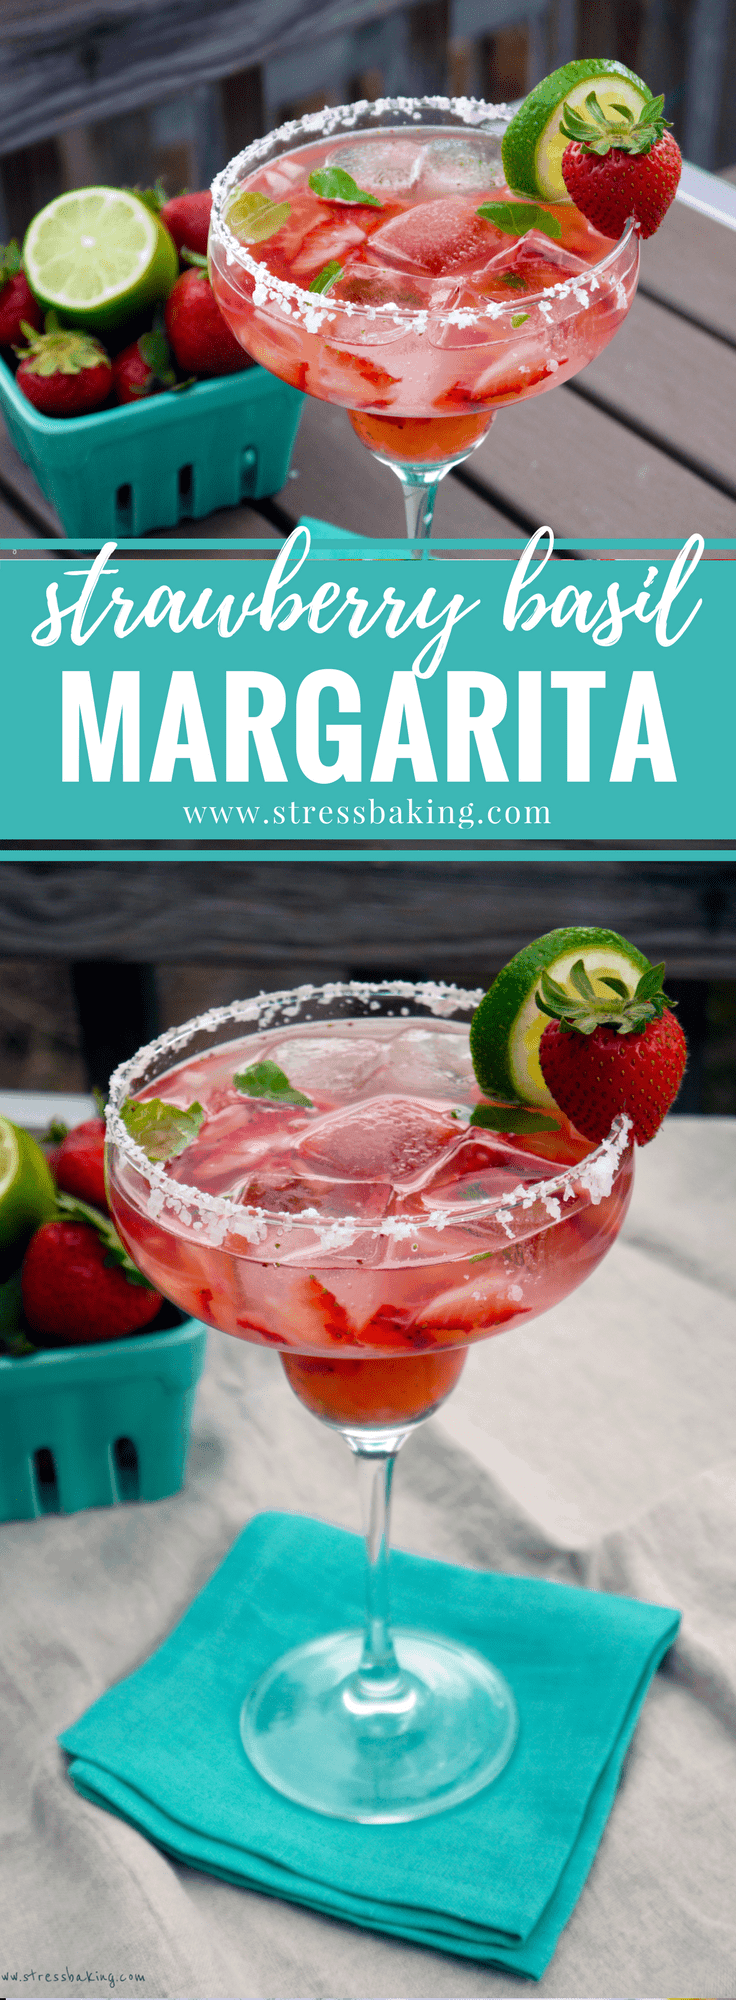 Strawberry Basil Margarita: Sweet and savory join forces for your new favorite summer cocktail! Basil provides an unexpected and refreshing take to the standard strawberry margarita. | stressbaking.com #stressbaking @stressbaking #margarita #drink #cocktail #summerdrink #summercocktail